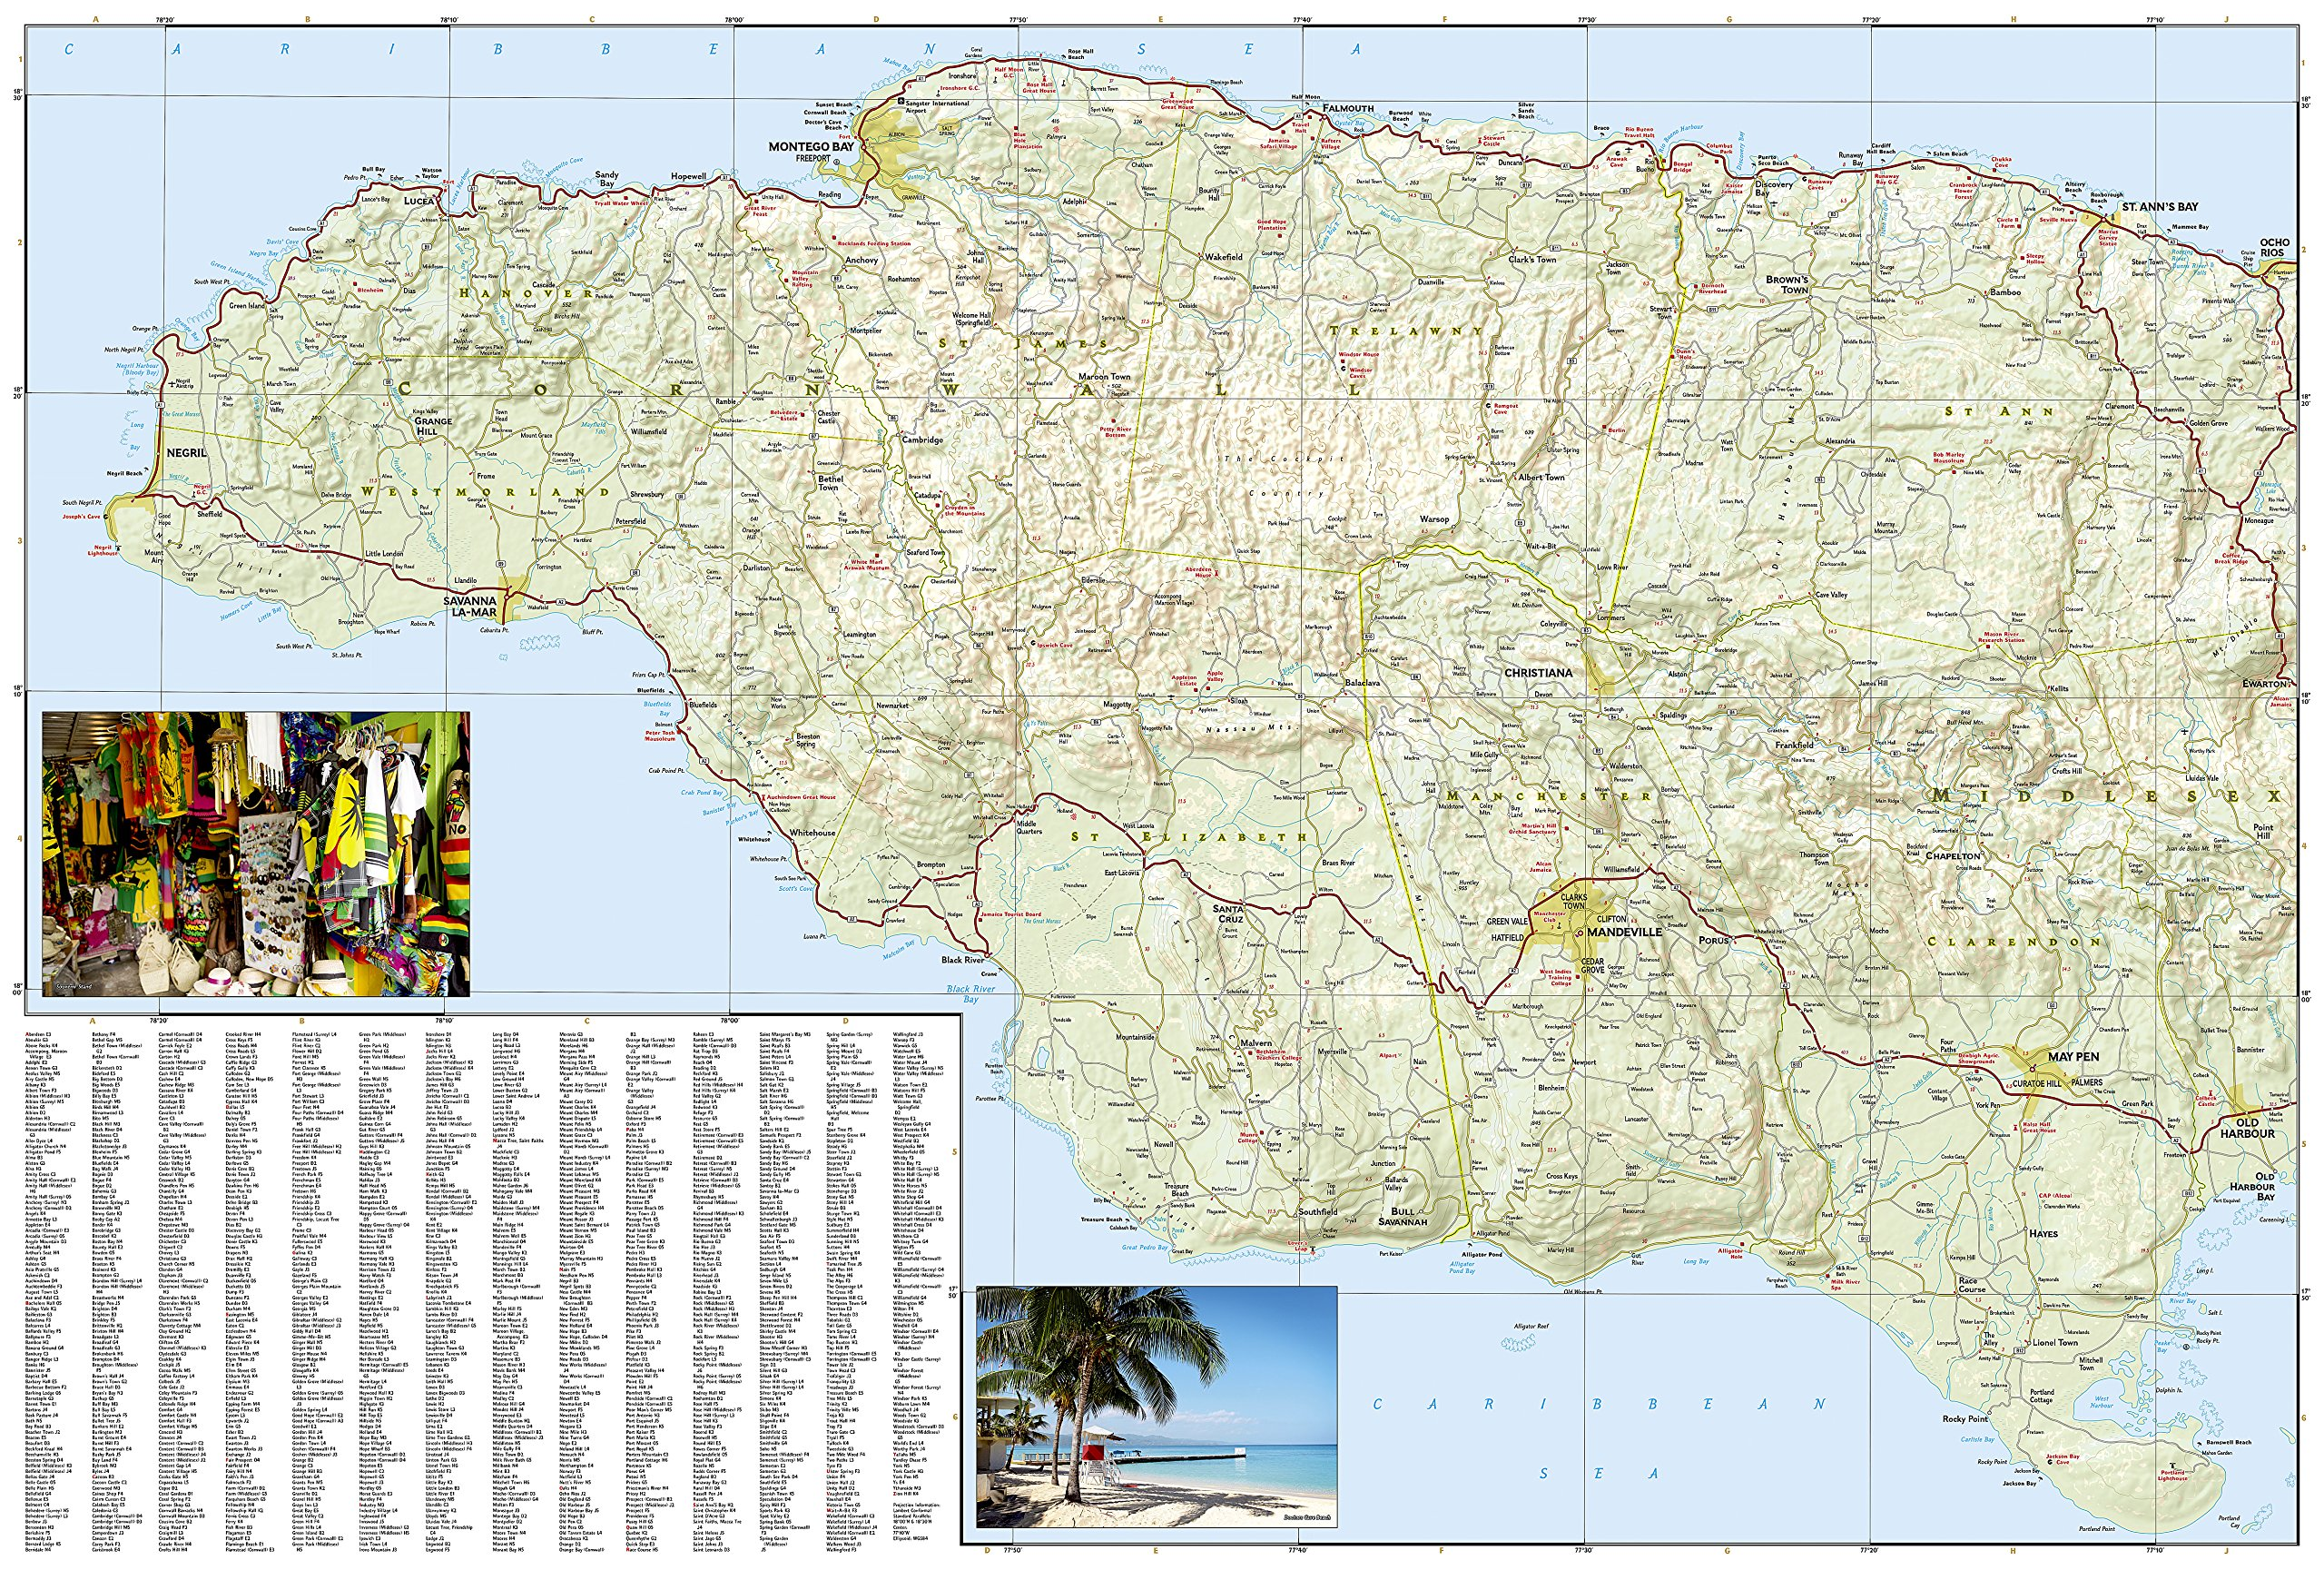 Jamaica national geographic adventure map national geographic jamaica national geographic adventure map national geographic maps adventure 9781597756181 amazon books gumiabroncs Gallery